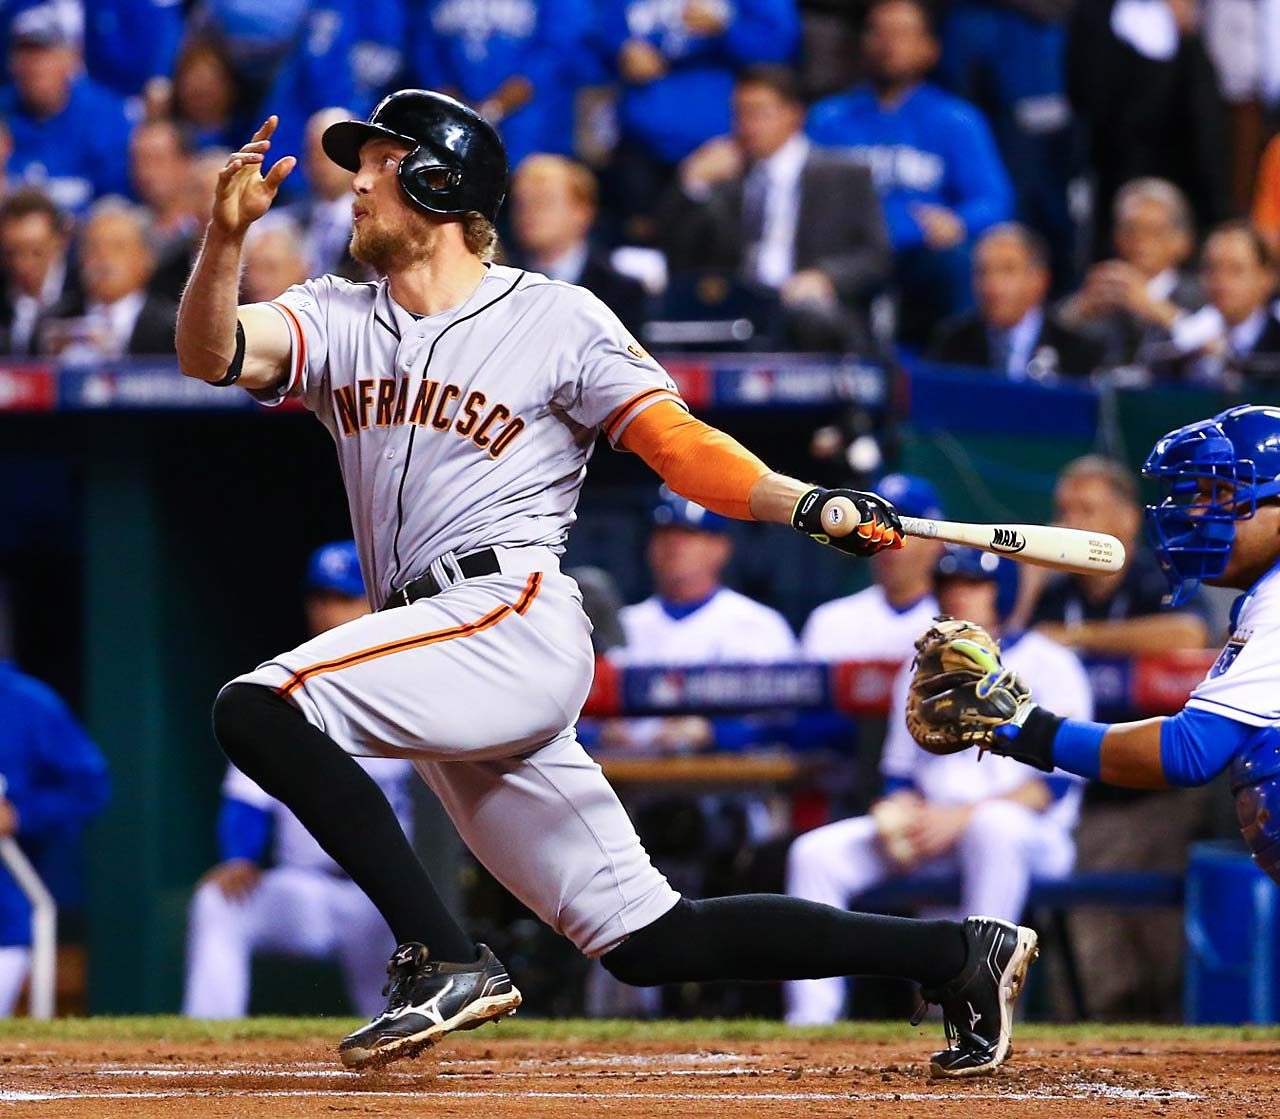 Hunter Pence hit the first home run in the 2014 World Series, taking James Shields deep for a two-run shot in the first inning.